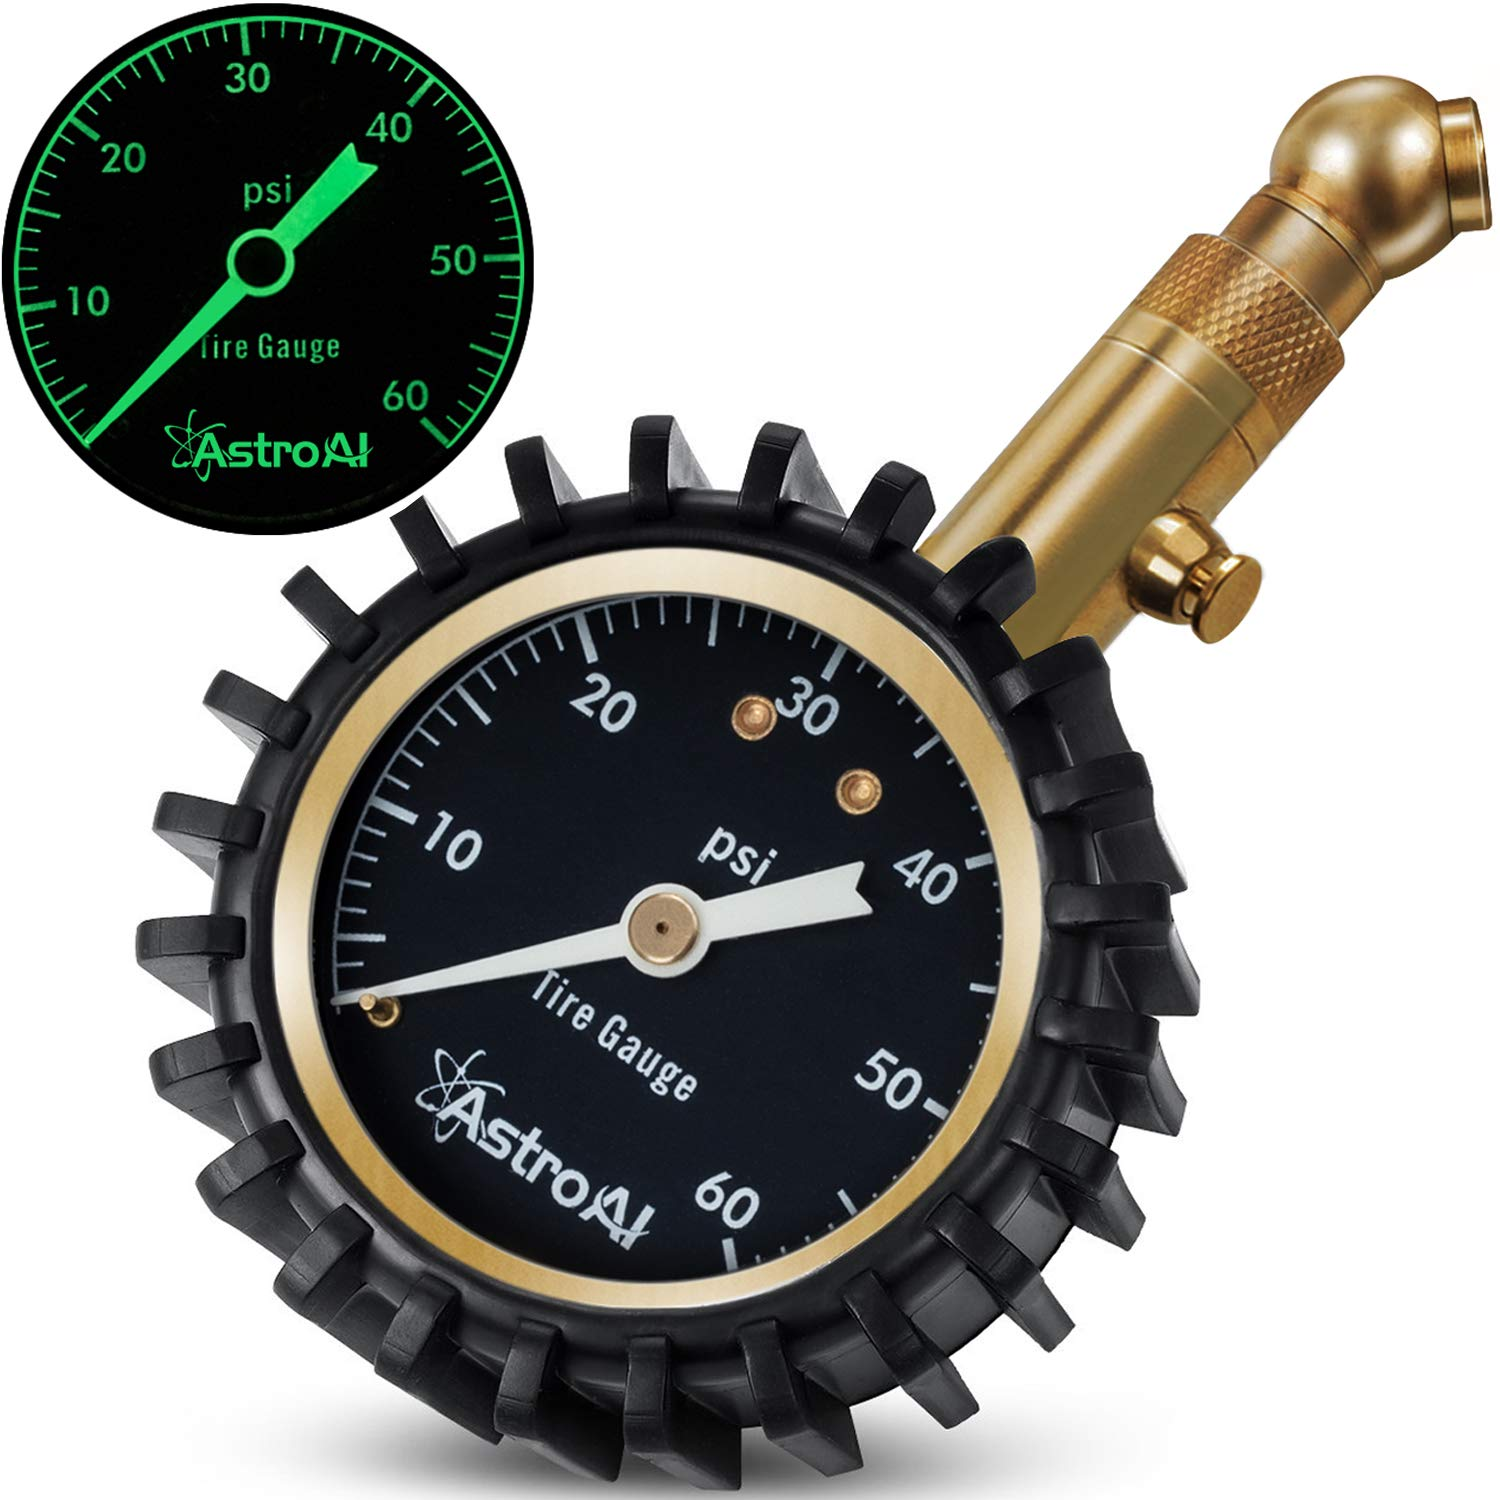 """AstroAI Heavy Duty Tire Pressure Gauge, 60 PSI Certified ANSI B40.1 Accurate with Large 2"""" Easy Read Glow Dial and Solid Brass Construction for Car Truck Motorcycle"""